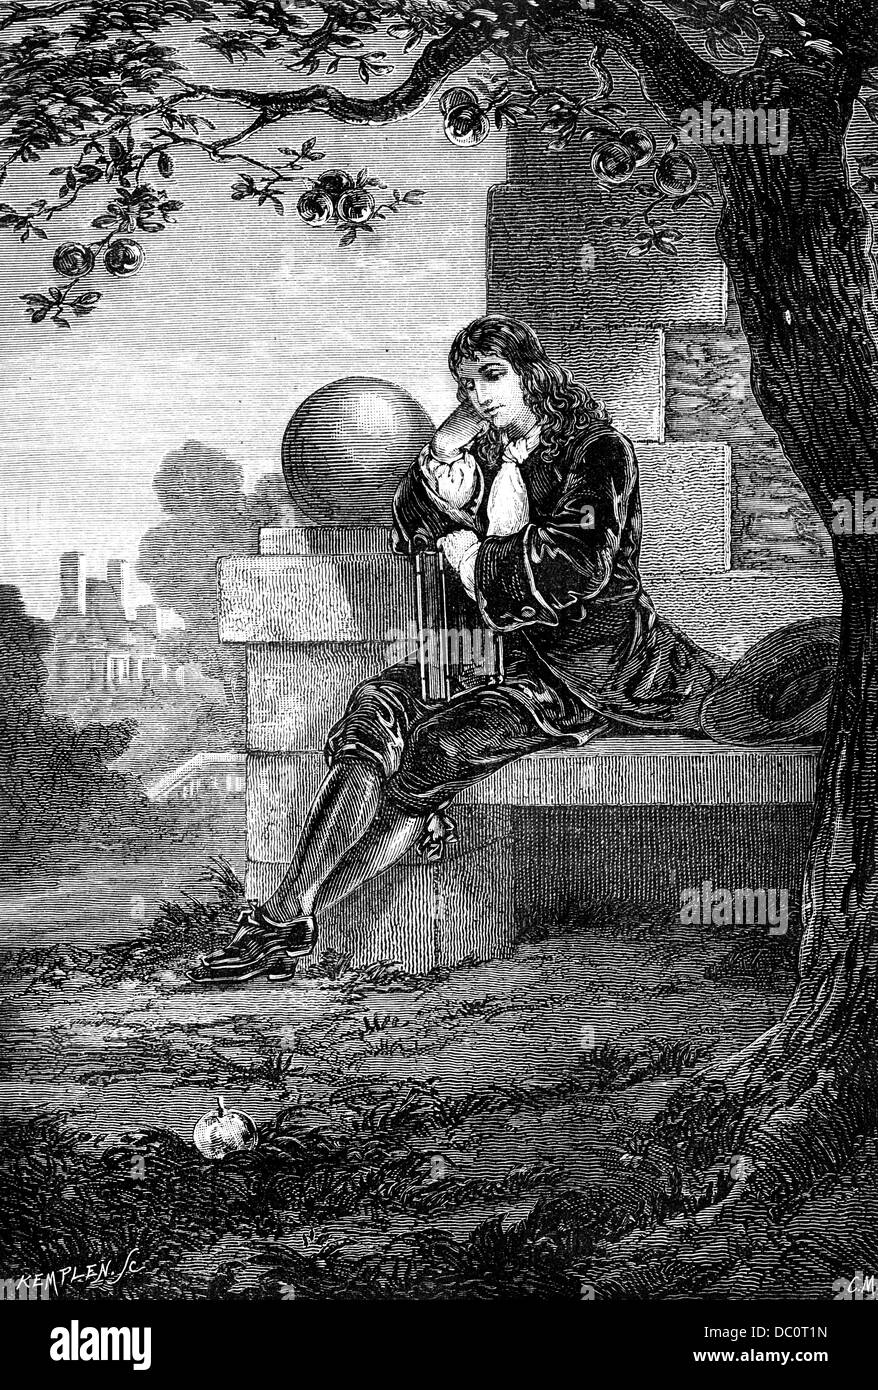 1600s ENGRAVING OF SIR ISAAC NEWTON AS YOUNG MAN SITTING UNDER APPLE TREE PONDERING DROPPING APPLE AND GRAVITY Stock Photo